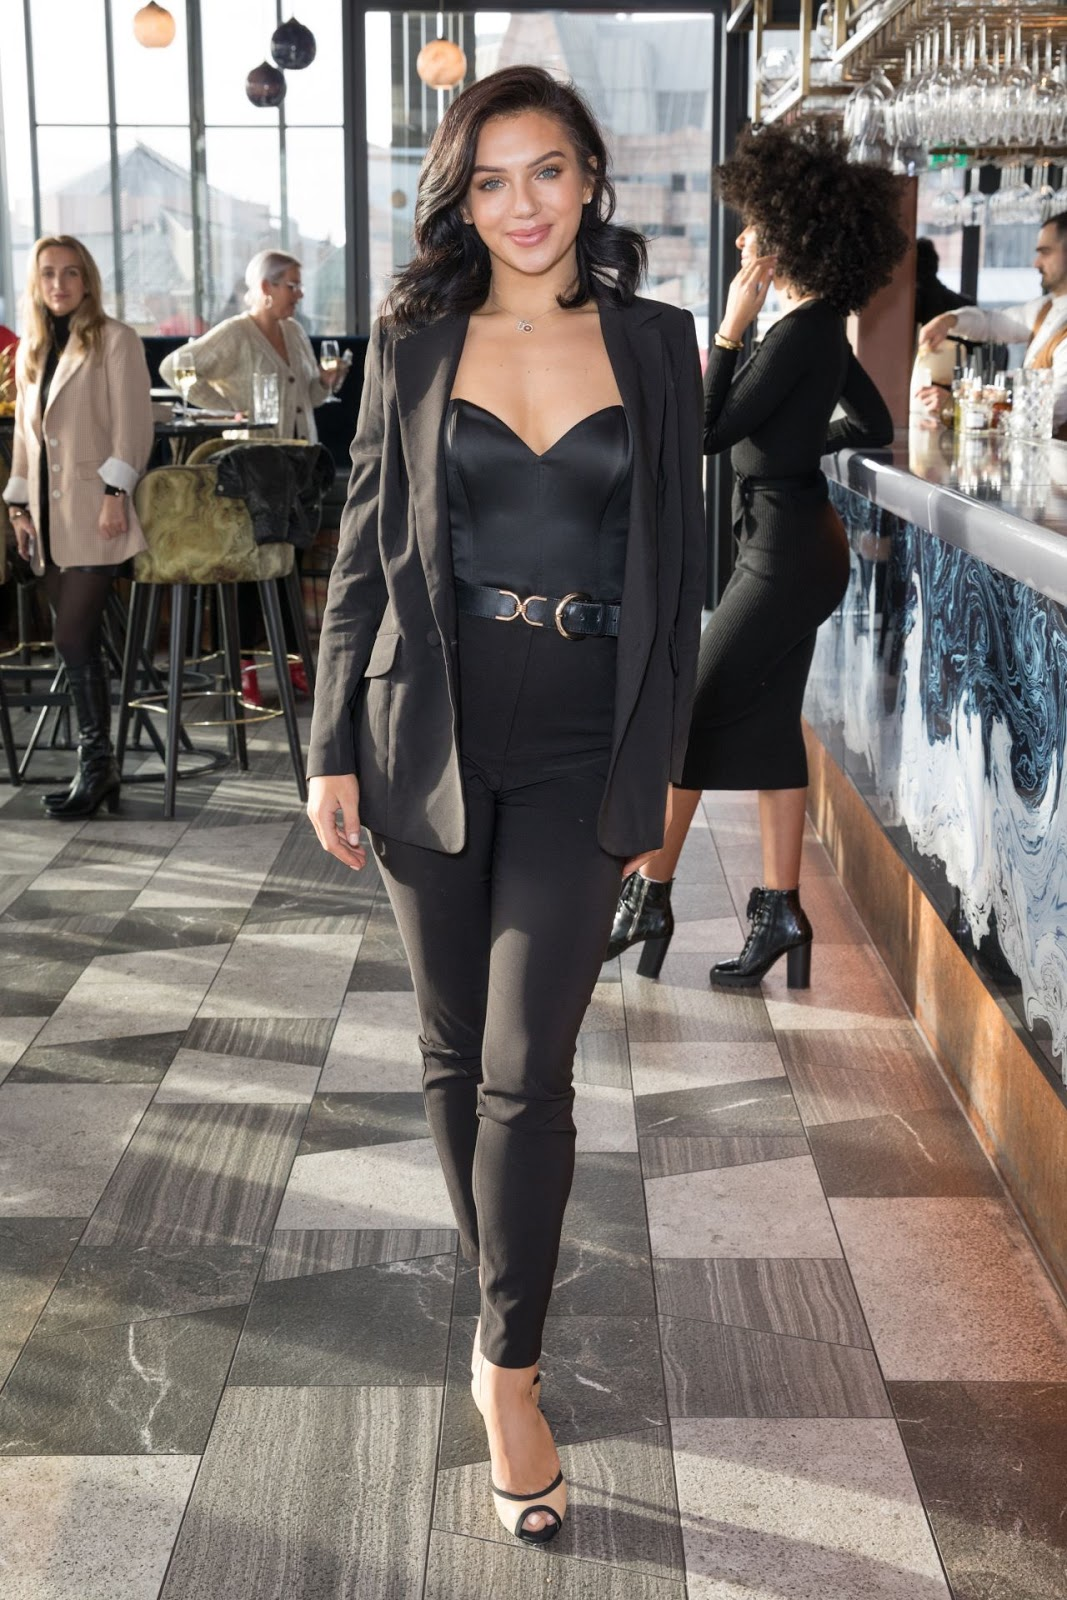 Alexandra Cane sizzles in black jumpsuit and blazer for private brunch in London